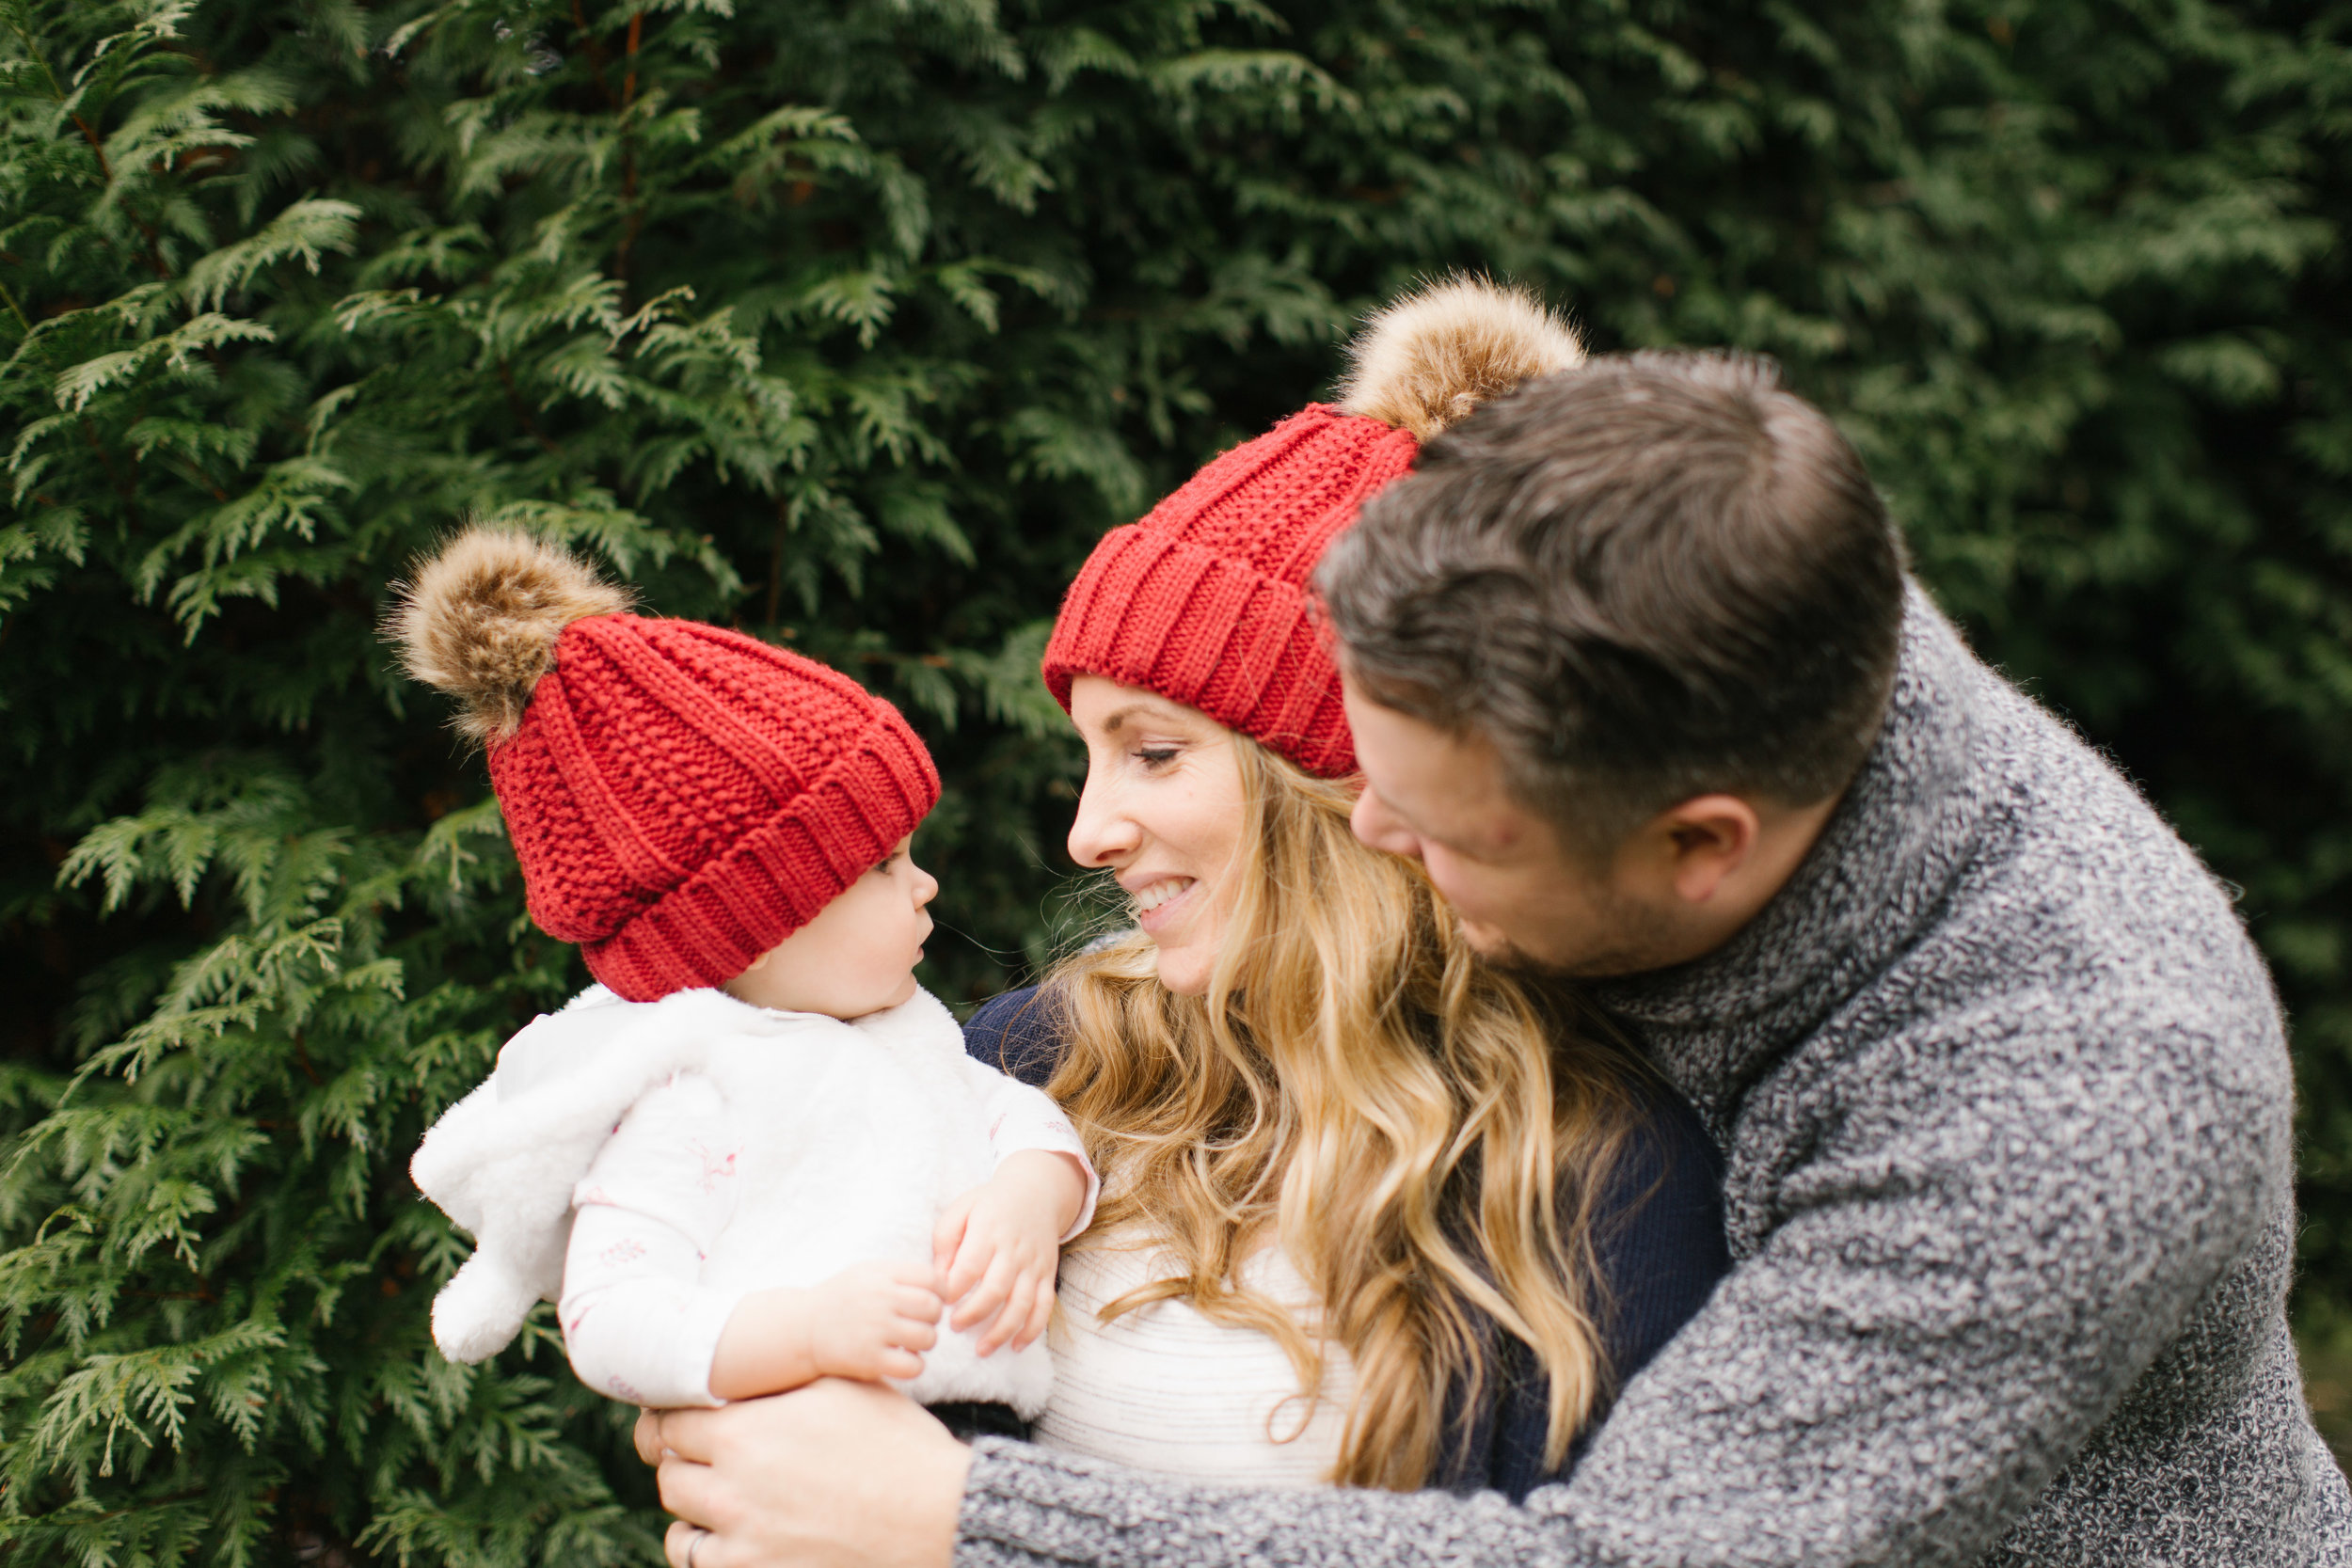 Natural light sweet family at home lifestlyle photography seattle bellevue kirkland WA Chelsea Macor Photography-41.jpg